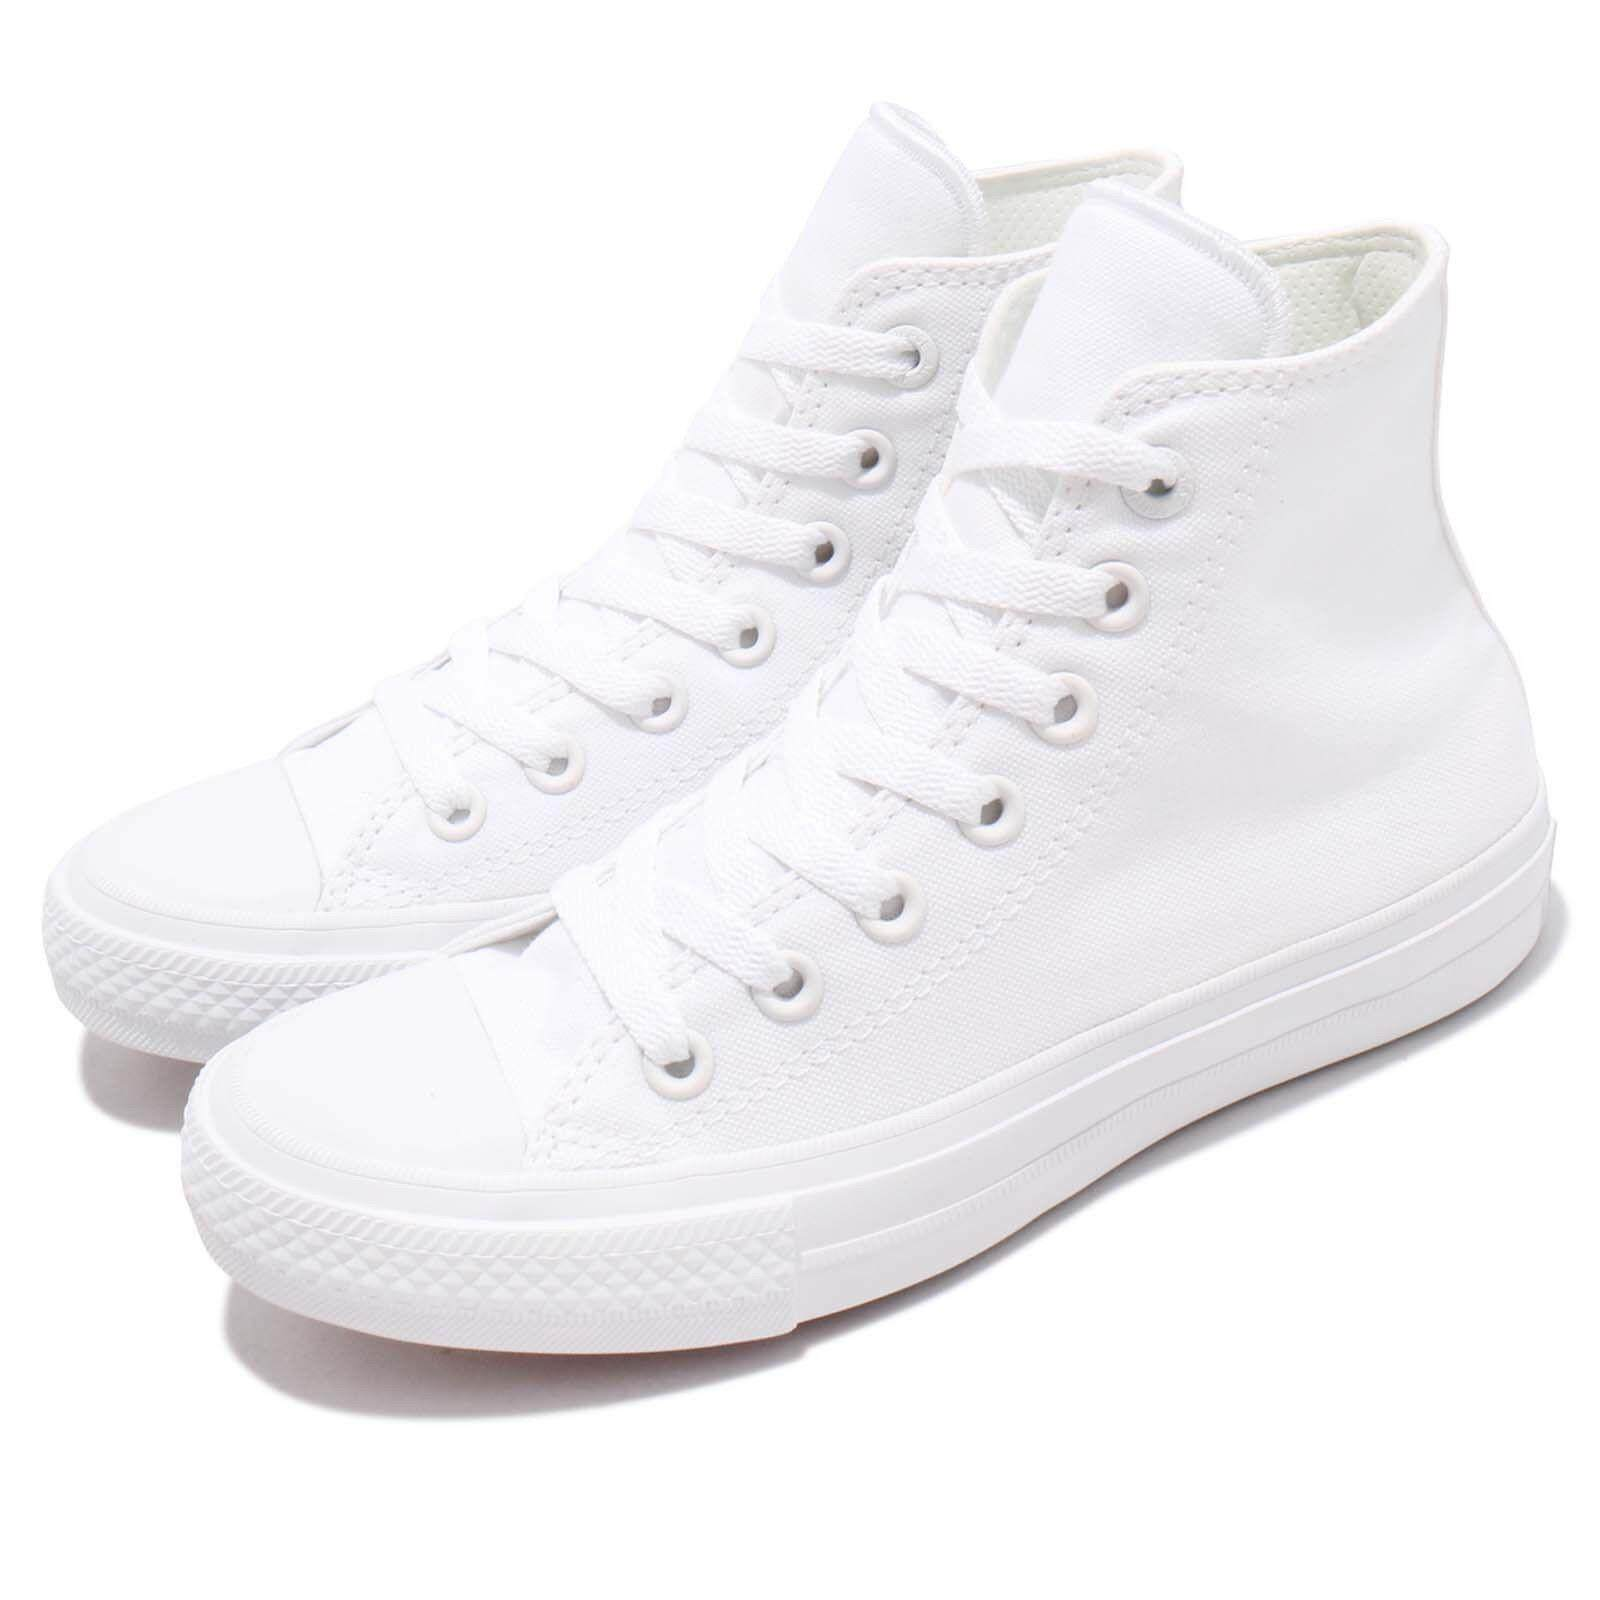 2f99214ed37b Discount Converse Chuck Taylor All Star Signature II 2 White Lunarlon Mens  Shoes